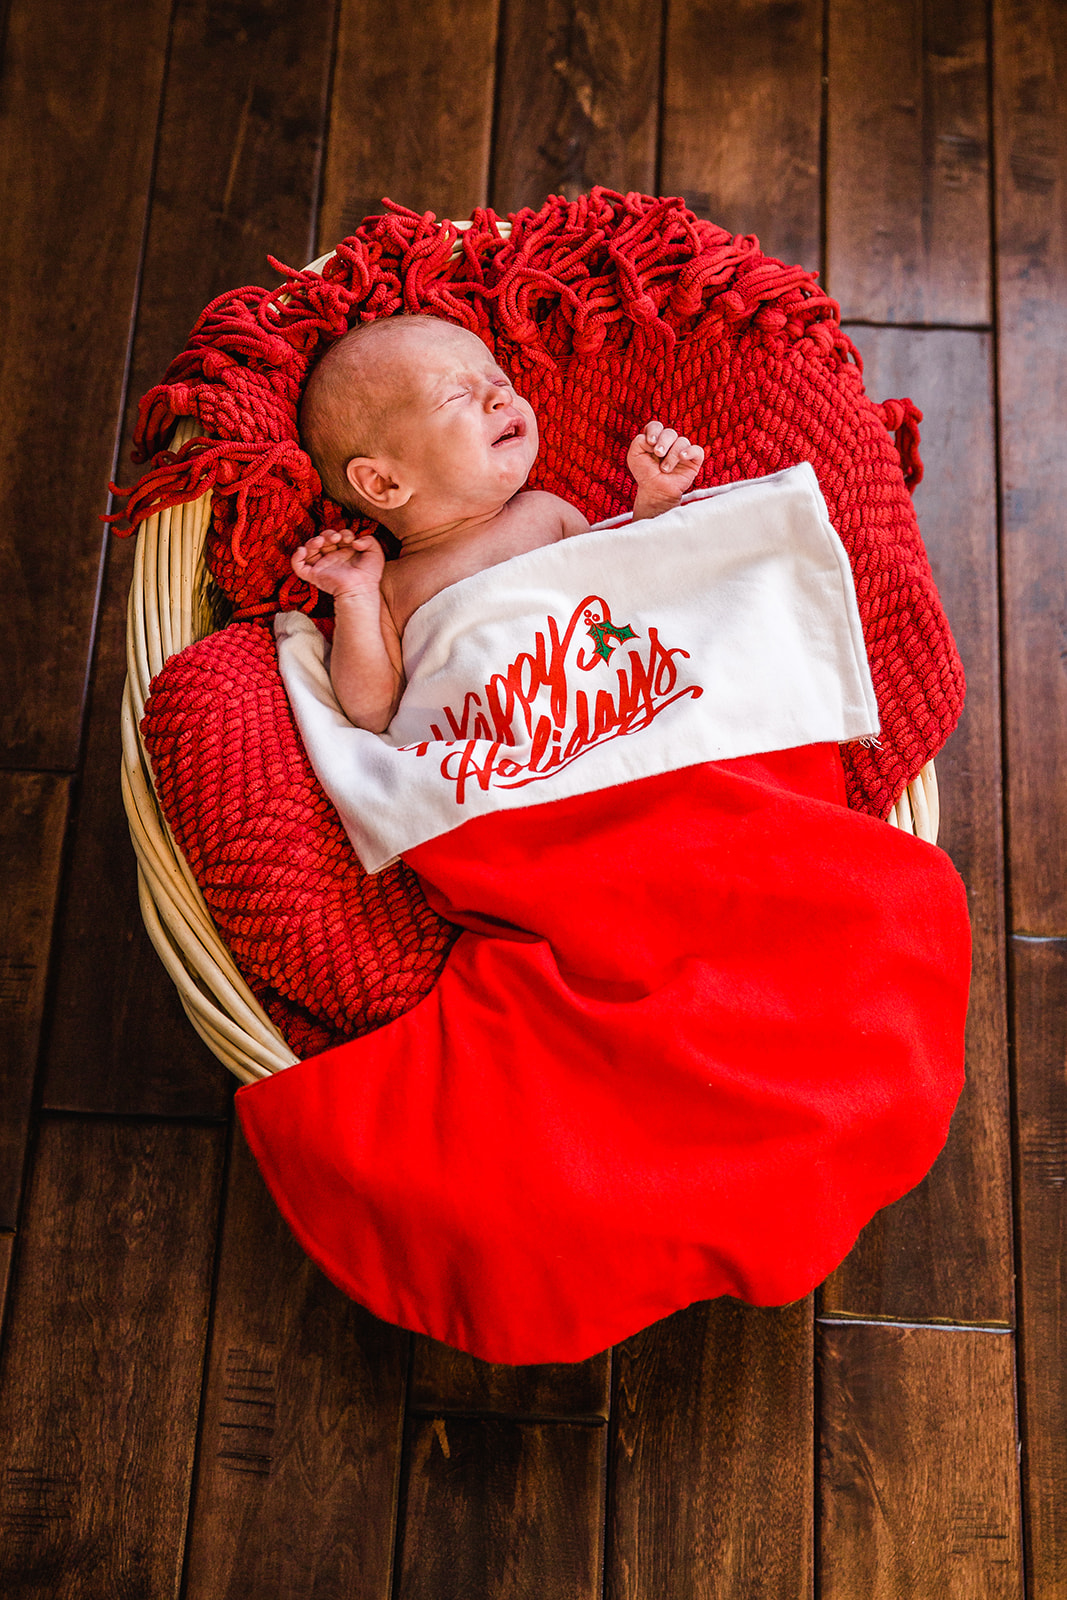 newborn stocking stuffer christmas themed newborn photo shoot #newborns christmas miracle baby on a red knit blanket newborn in a basket inspiration swaddled in a stocking sweet crying baby tis the season to have a baby precious new baby pictures holiday photo shoot inspiration baby boy #preston #idaho #littletyke #christmas #stockingstuffer #babyshoottheme #babyboy #preciousangle #christmasmiracle